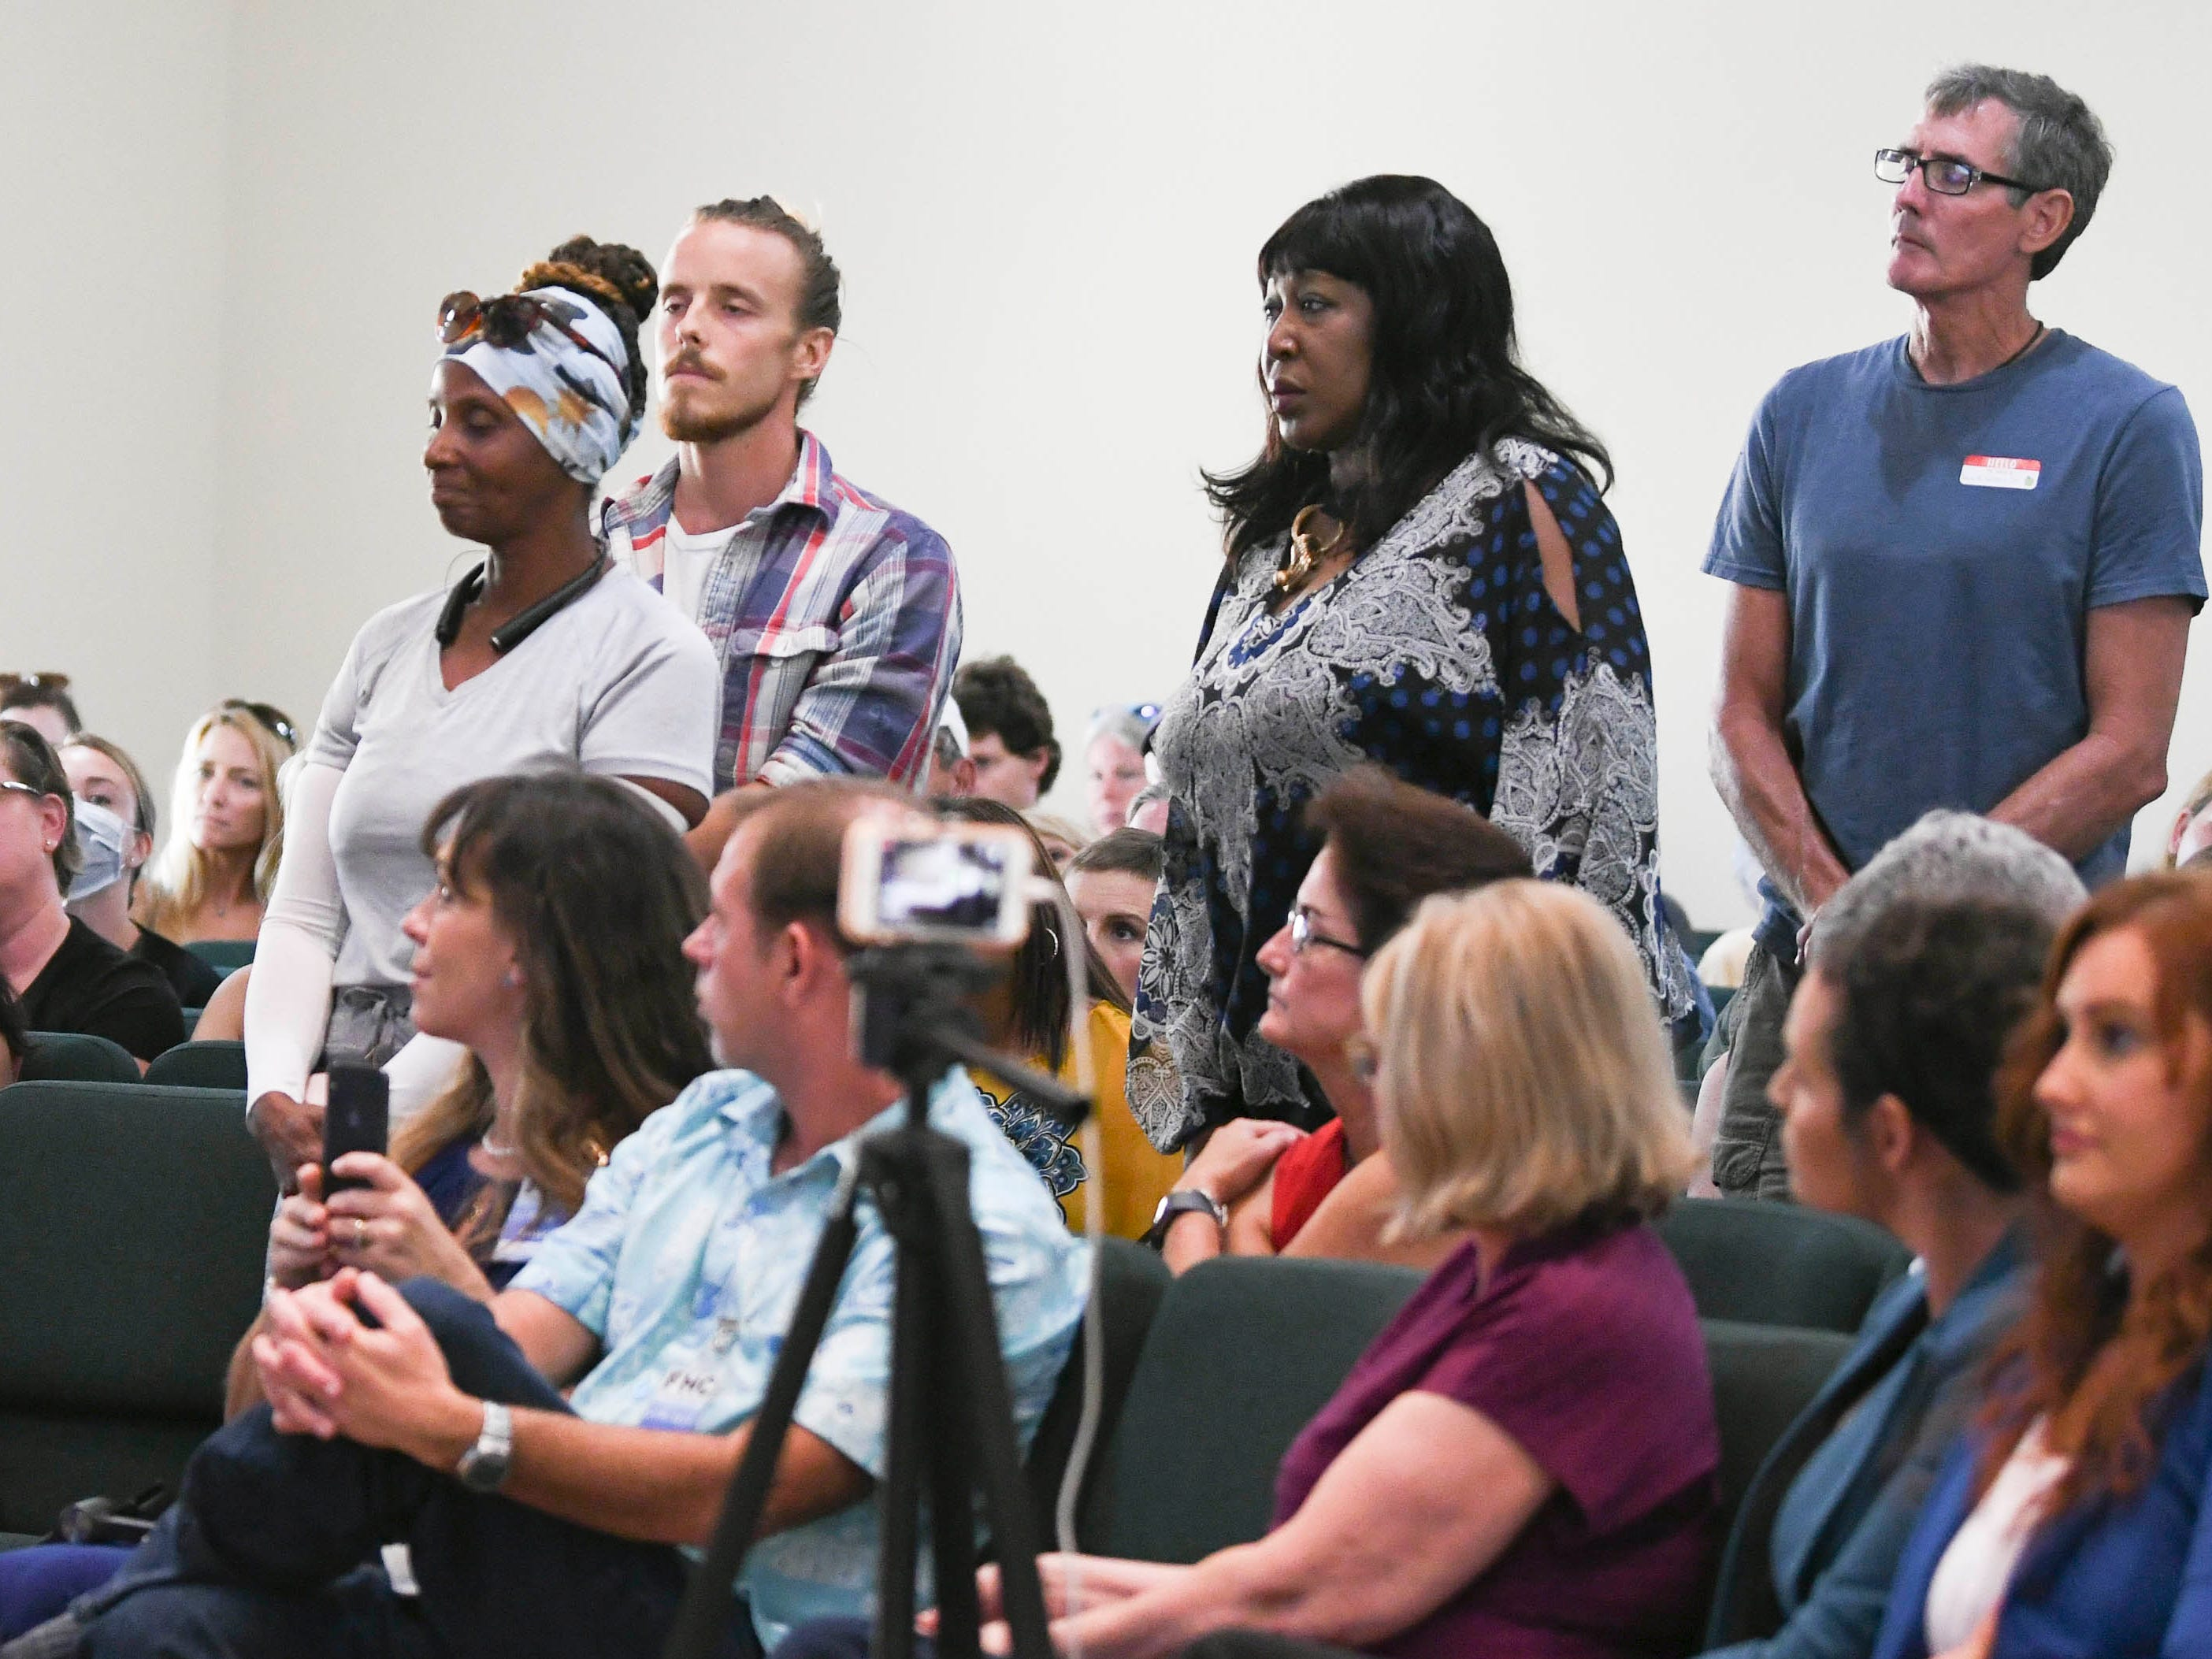 Residents stand in line to ask questions of environmental activist Erin Brockovich and her associate Bob Bowcock during a town hall at Kingdom Gate Worship Center.